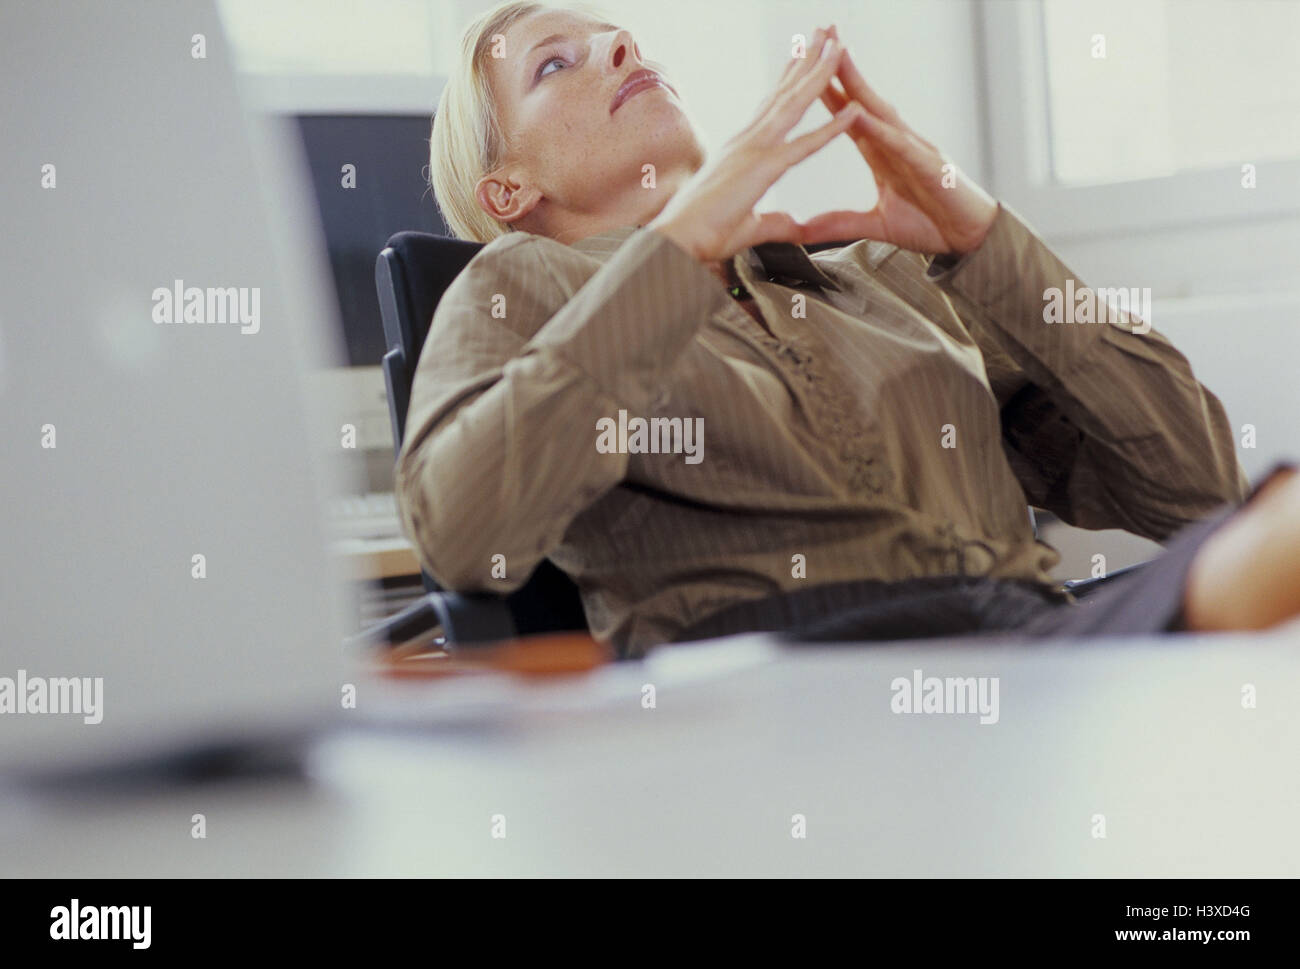 Office, manager, think, lean back, portrait, office workers, clerks, woman, businesswoman, consider, break, creativity, - Stock Image